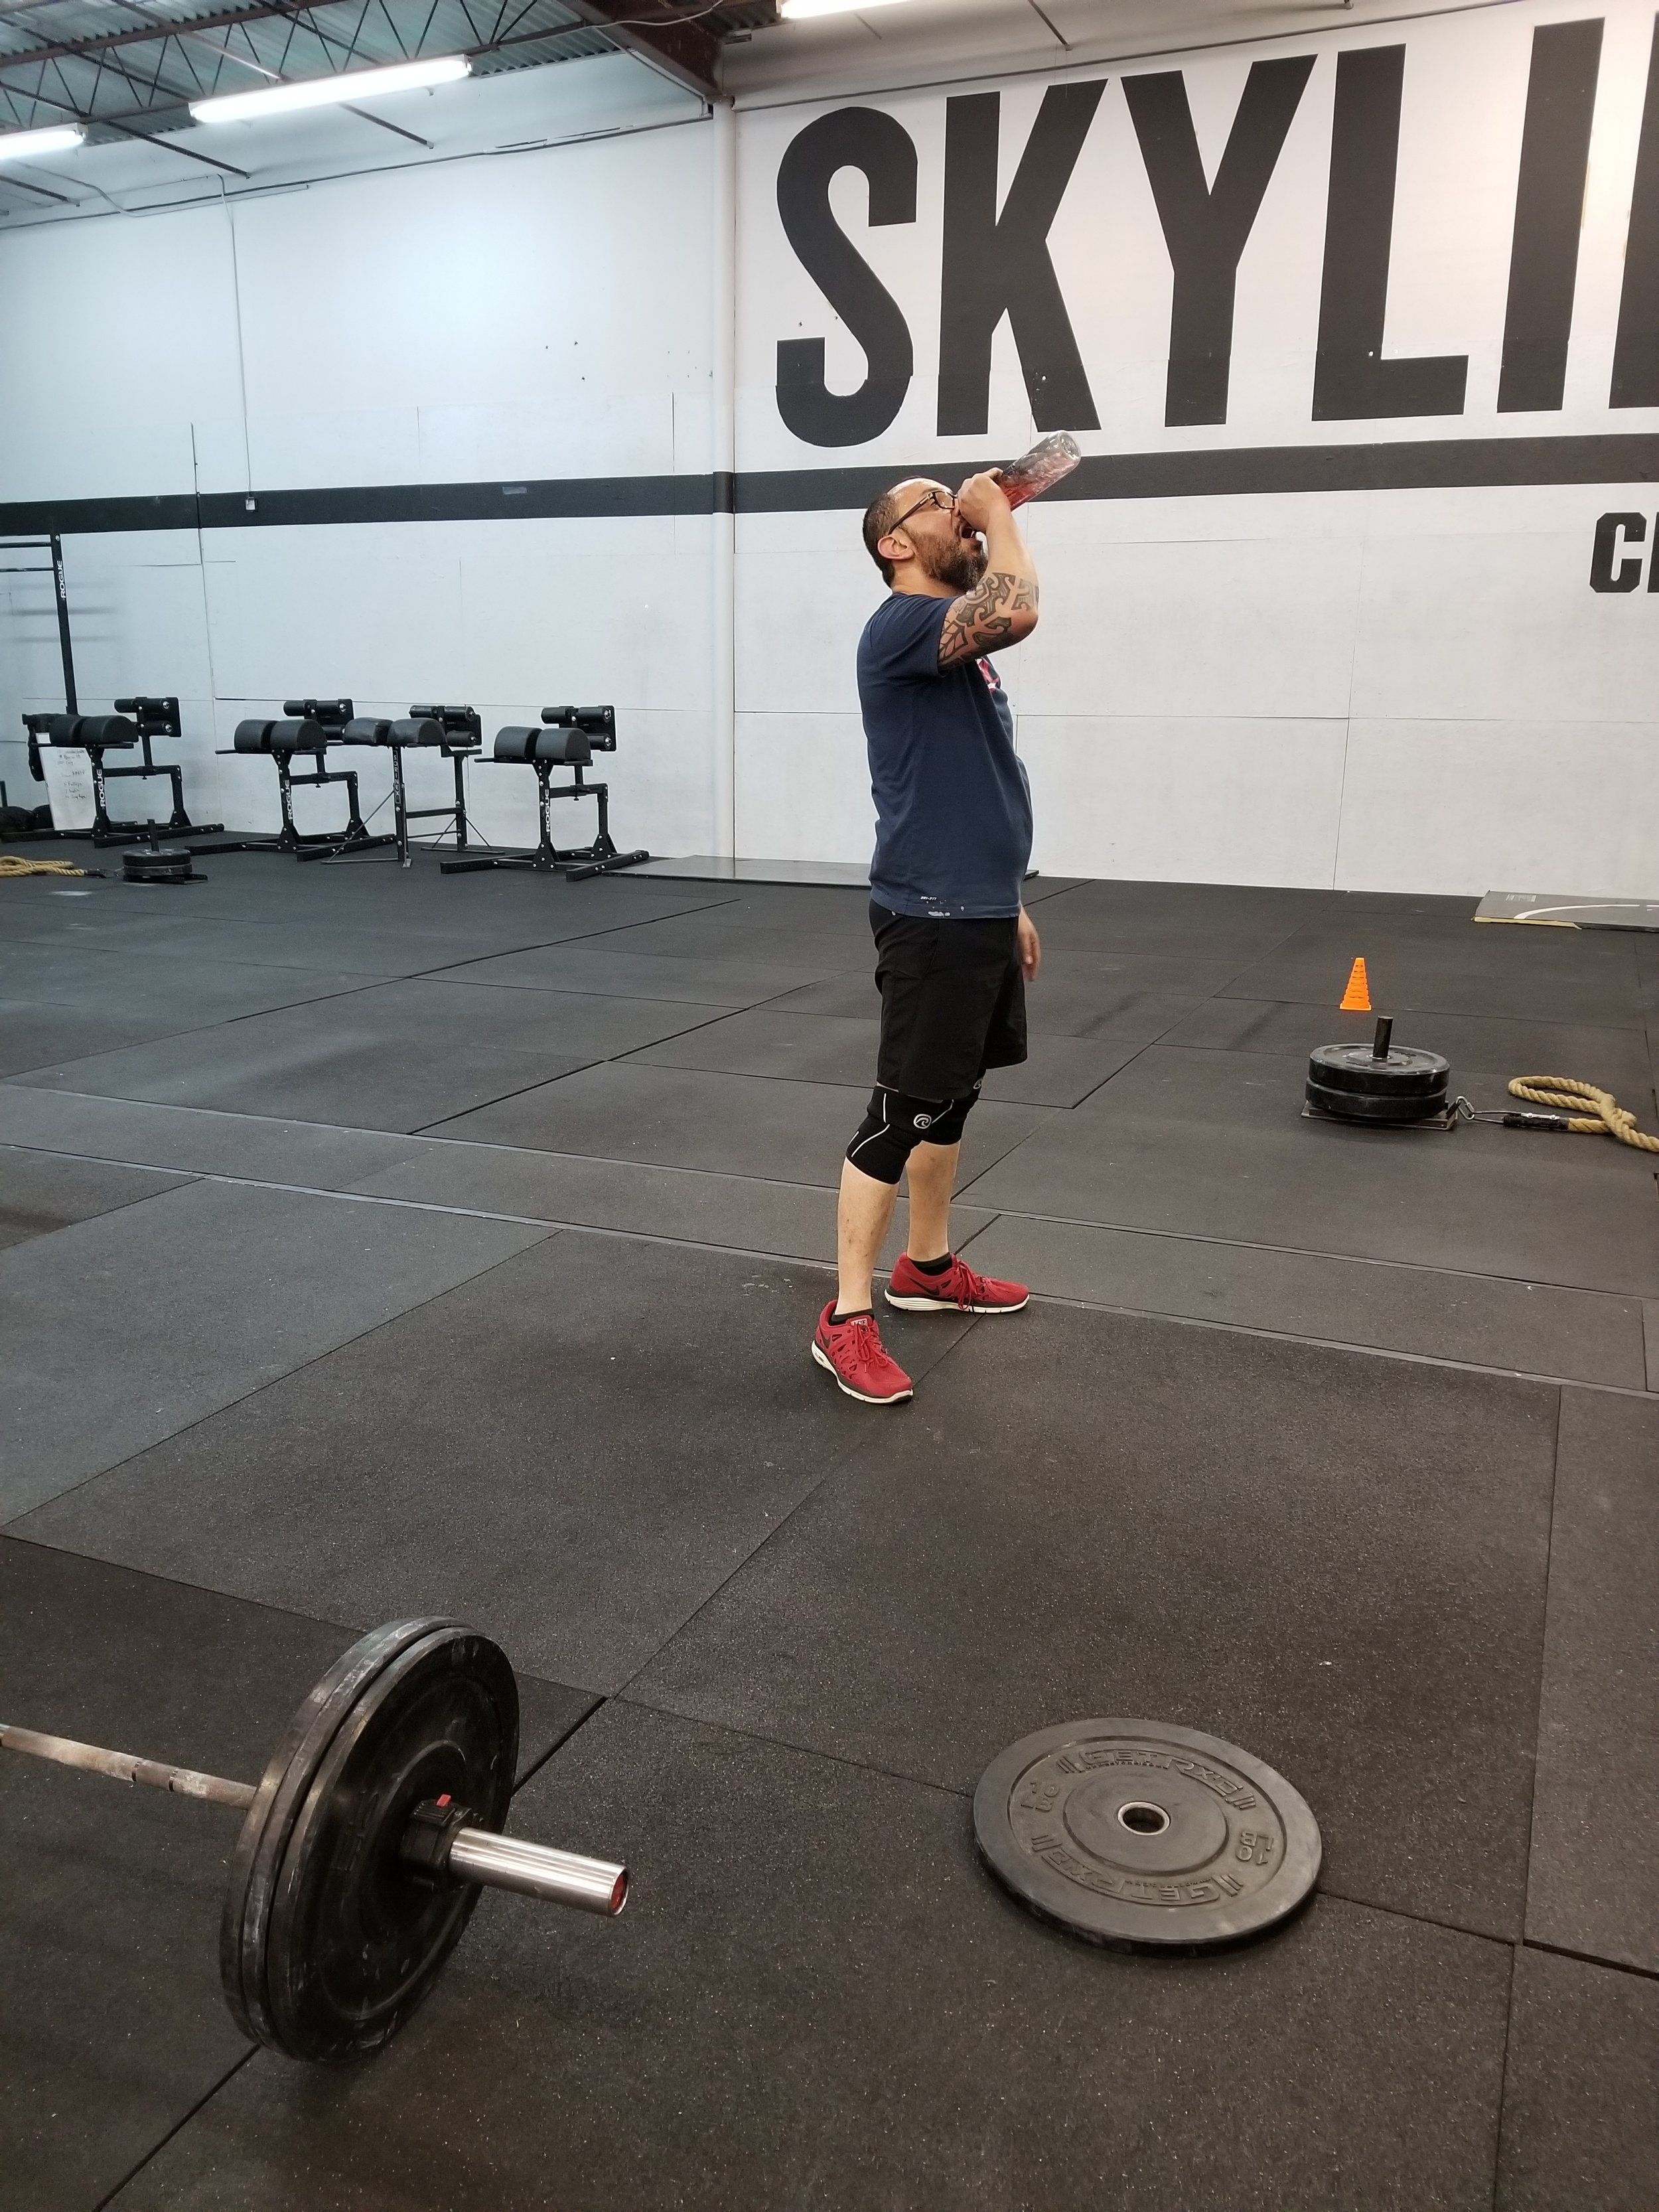 This is Carlos Castillo. He came in to Skyline with chronic lower back pain that made everyday tasks difficult. He would feel this pain from the moment he woke up to the the time he went to bed. I told him he needed to strengthen his core to help stabilize the the spine and it would stop the pain. Though Carlos was very hesitant when I told him CrossFit would help relieve his chronic back issues, he started up and now over a year and half later Carlos is fitter than ever and pain free!   How long have you been at Skyline CrossFit?   - 19 months     What workout regimen did you do before crossfit and how long?   - Running 8-10 Miles 2-3 times per week, Few years      What chronic injuries did you have?   -Constant Lower back pain,compressed L4 and L5 ,Pain on my right knee.     Do you have in underlying issues or injuries after 1 year of crossfit?   No injuries at all     Do you think CrossFit helped these injuries. If so why?   Yes. My lower back pain is gone and my mobility has increased.